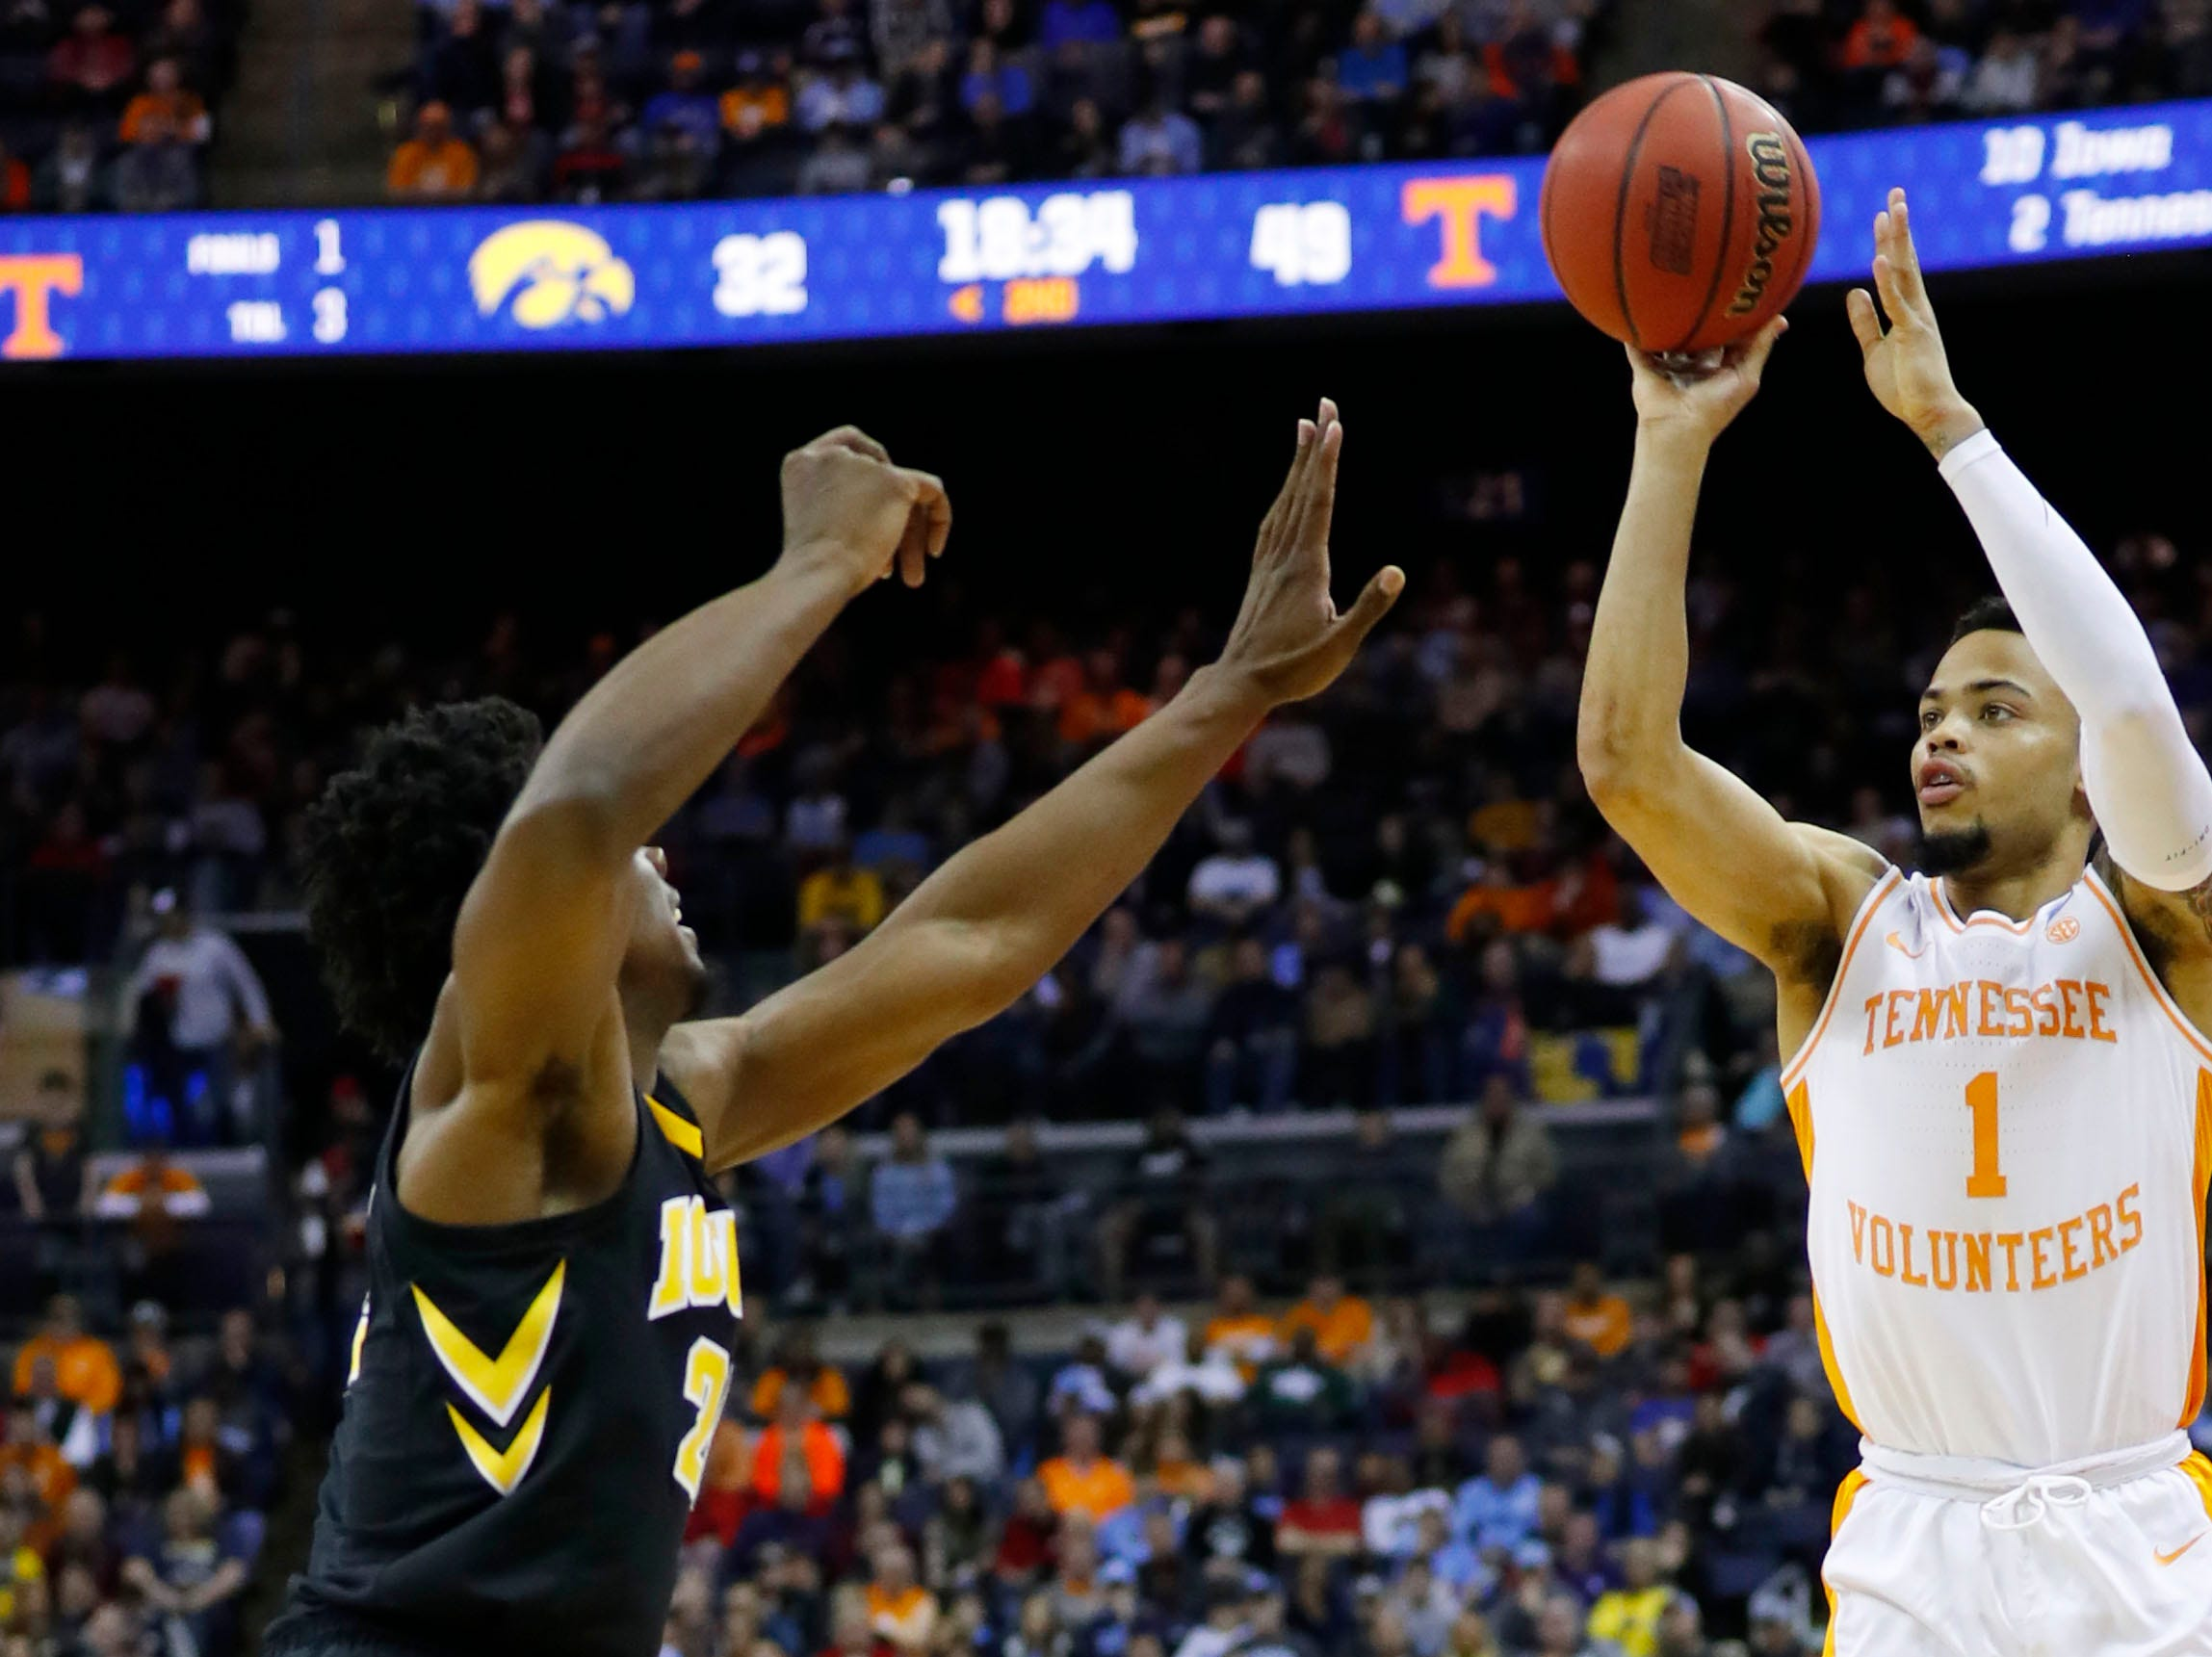 Tennessee Volunteers guard Lamonte Turner (1) shoots the ball over Iowa Hawkeyes forward Tyler Cook (25) in the second half in the second round of the 2019 NCAA Tournament at Nationwide Arena.